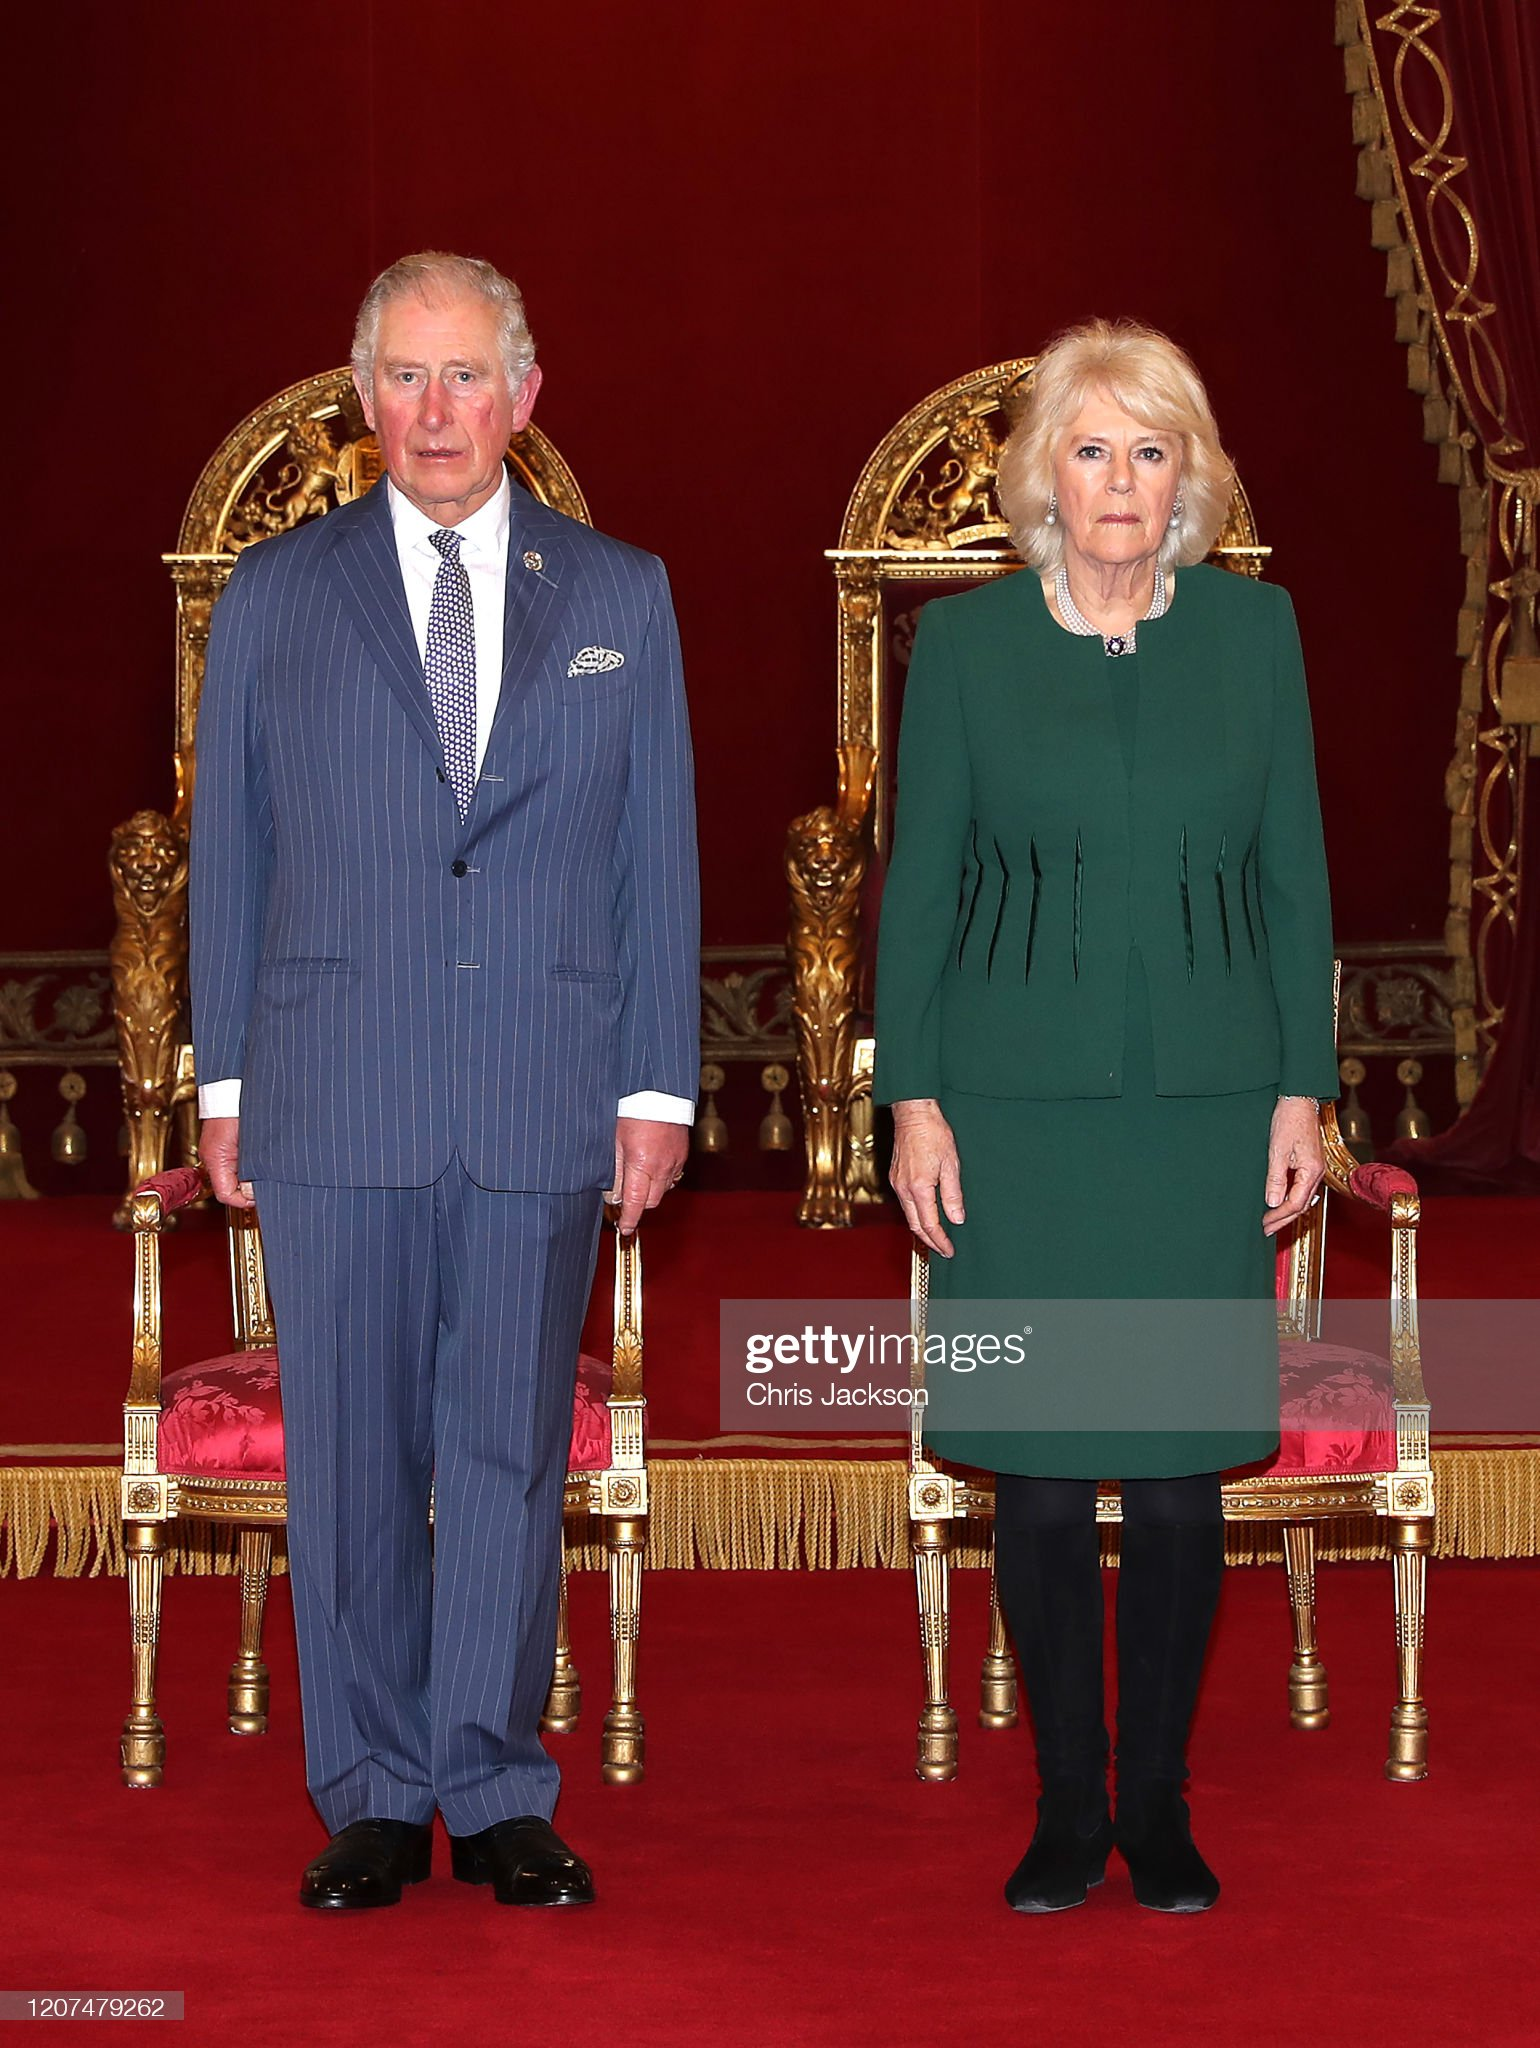 prince-charles-prince-of-wales-and-camilla-duchess-of-cornwall-in-the-picture-id1207479262